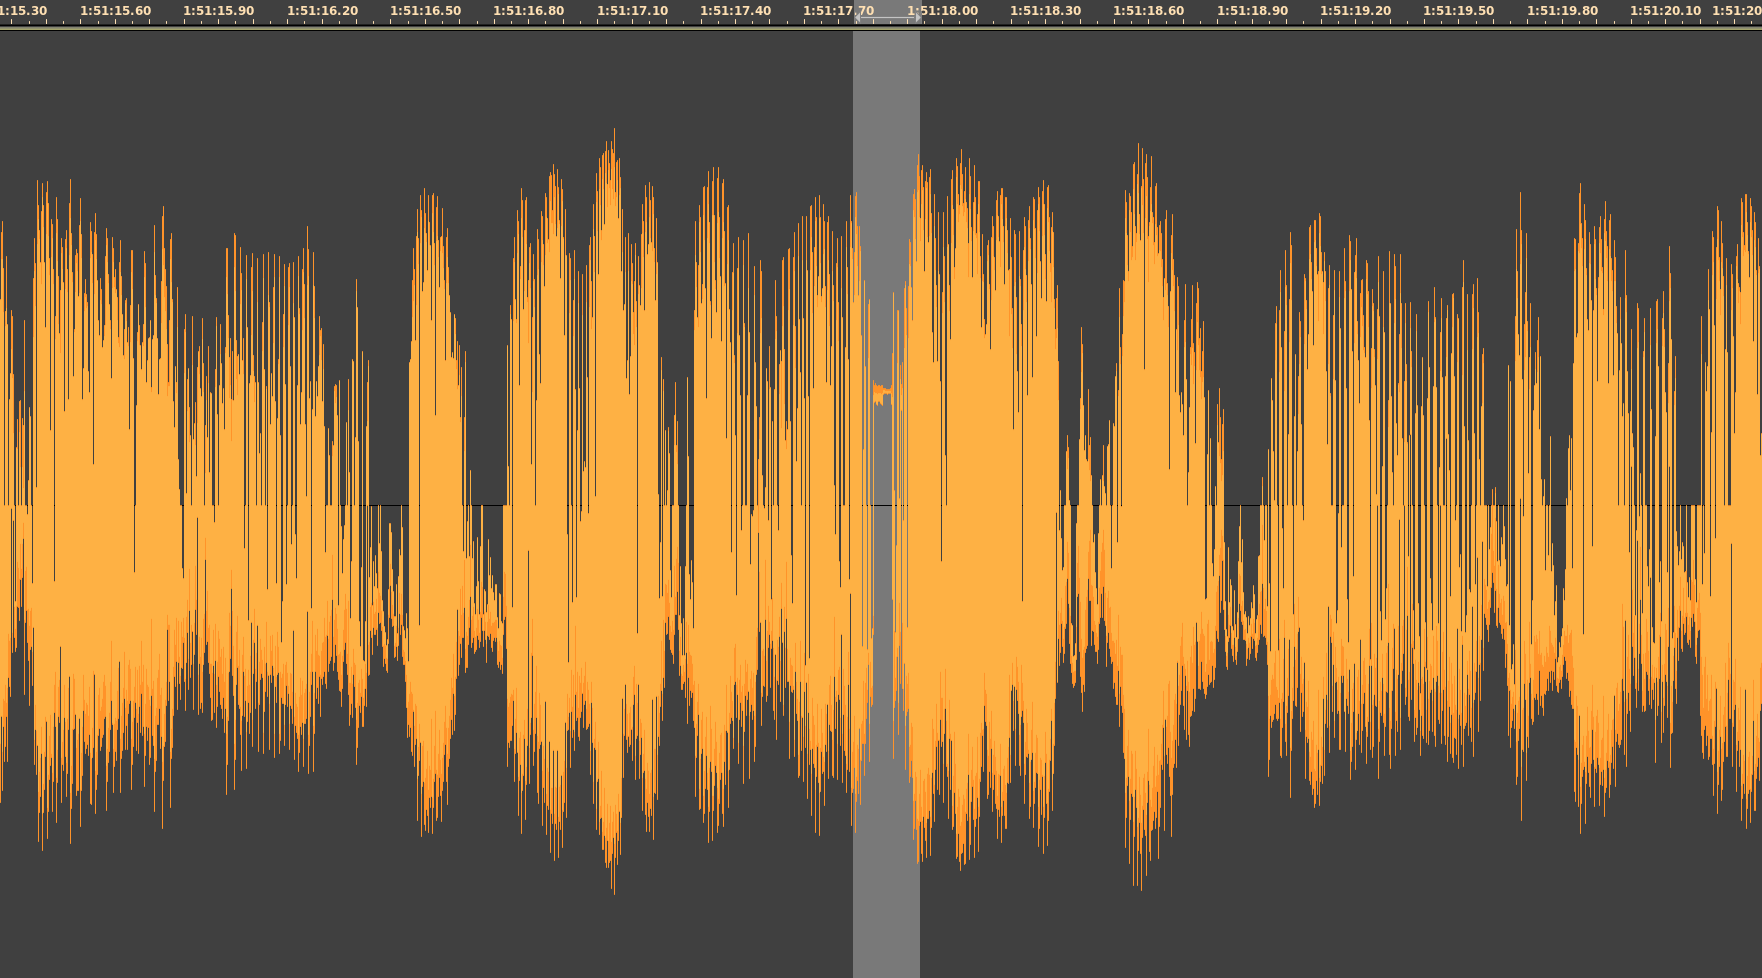 audacity-silence-waveform-db.png